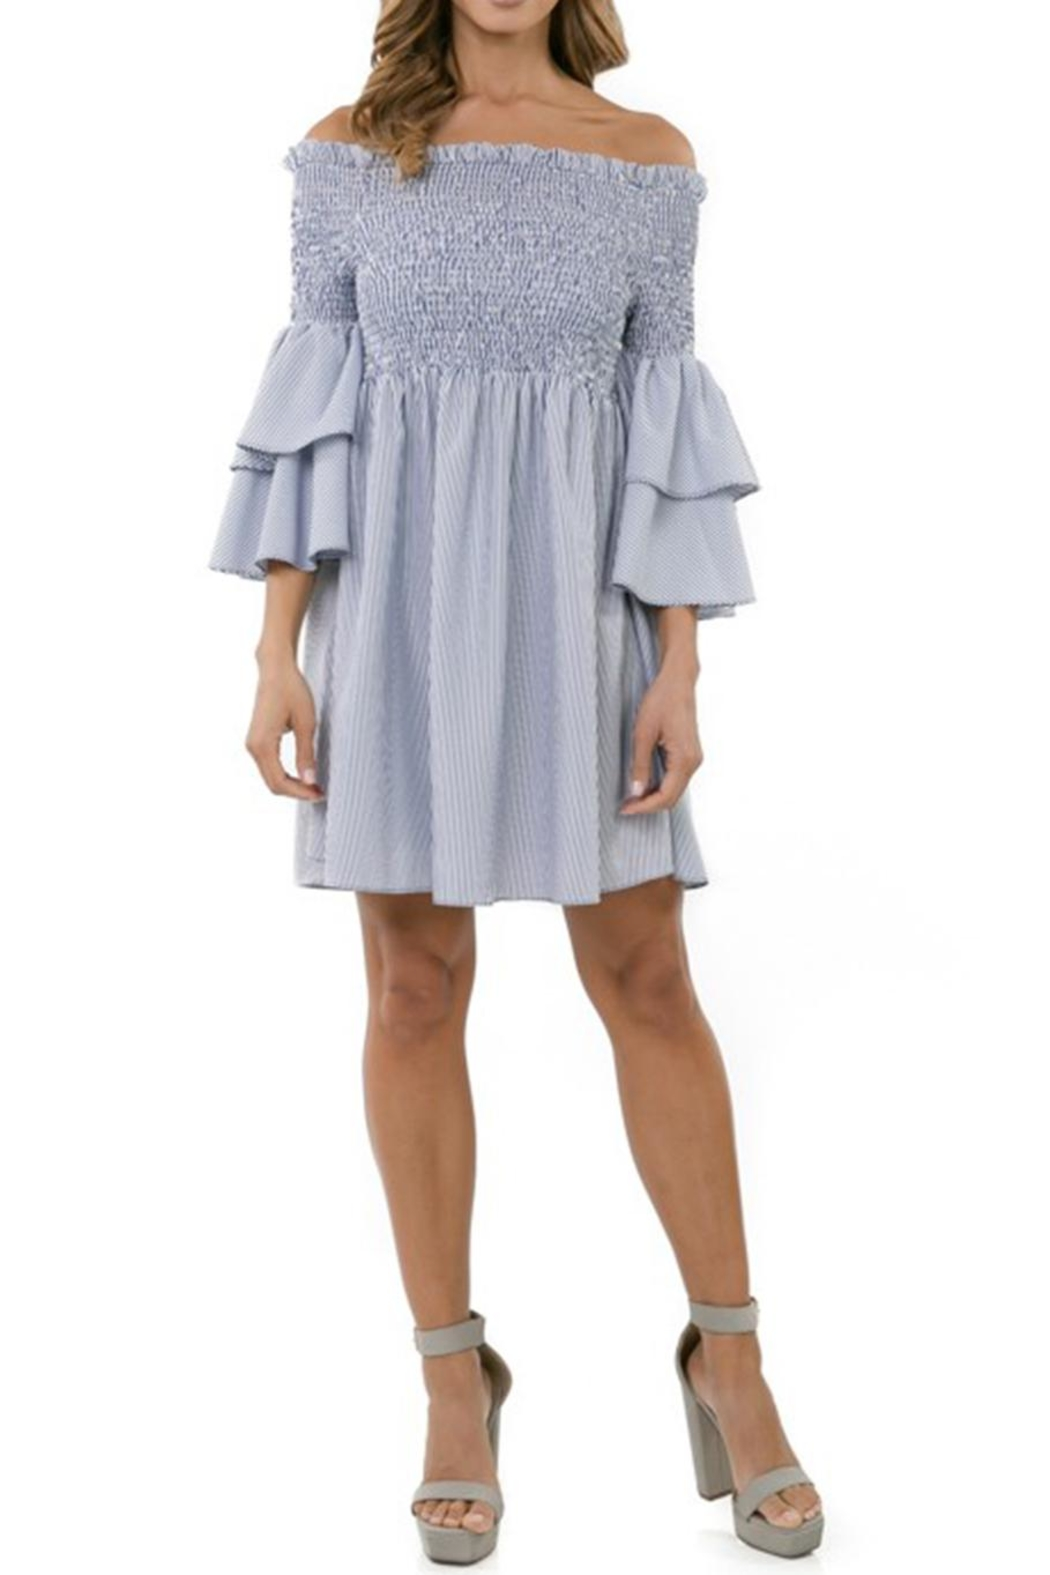 cq by cq Off Shoulder Dress - Main Image